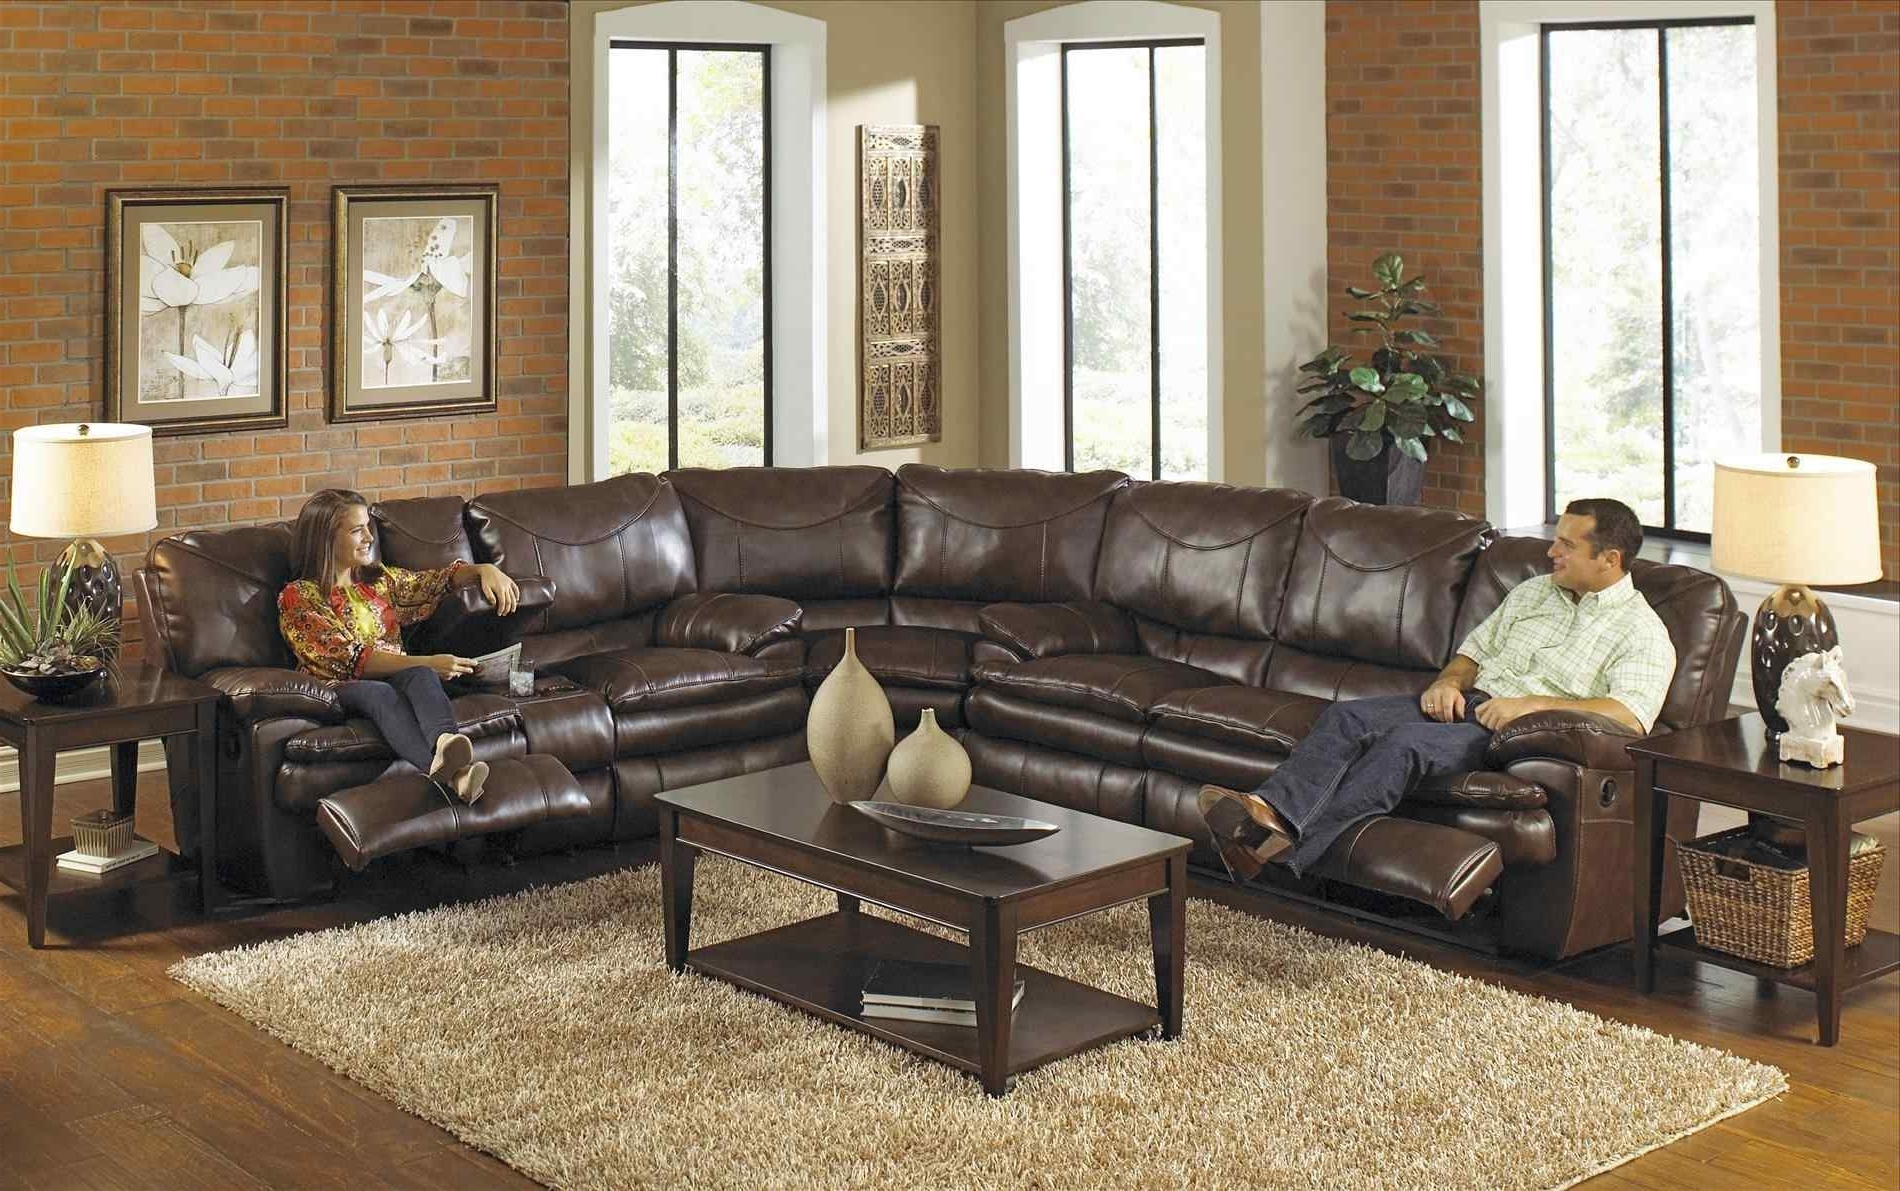 The Images Collection Of Concord Sectional Price Leather Furniture Intended For 2019 Thomasville Sectional Sofas (View 13 of 20)